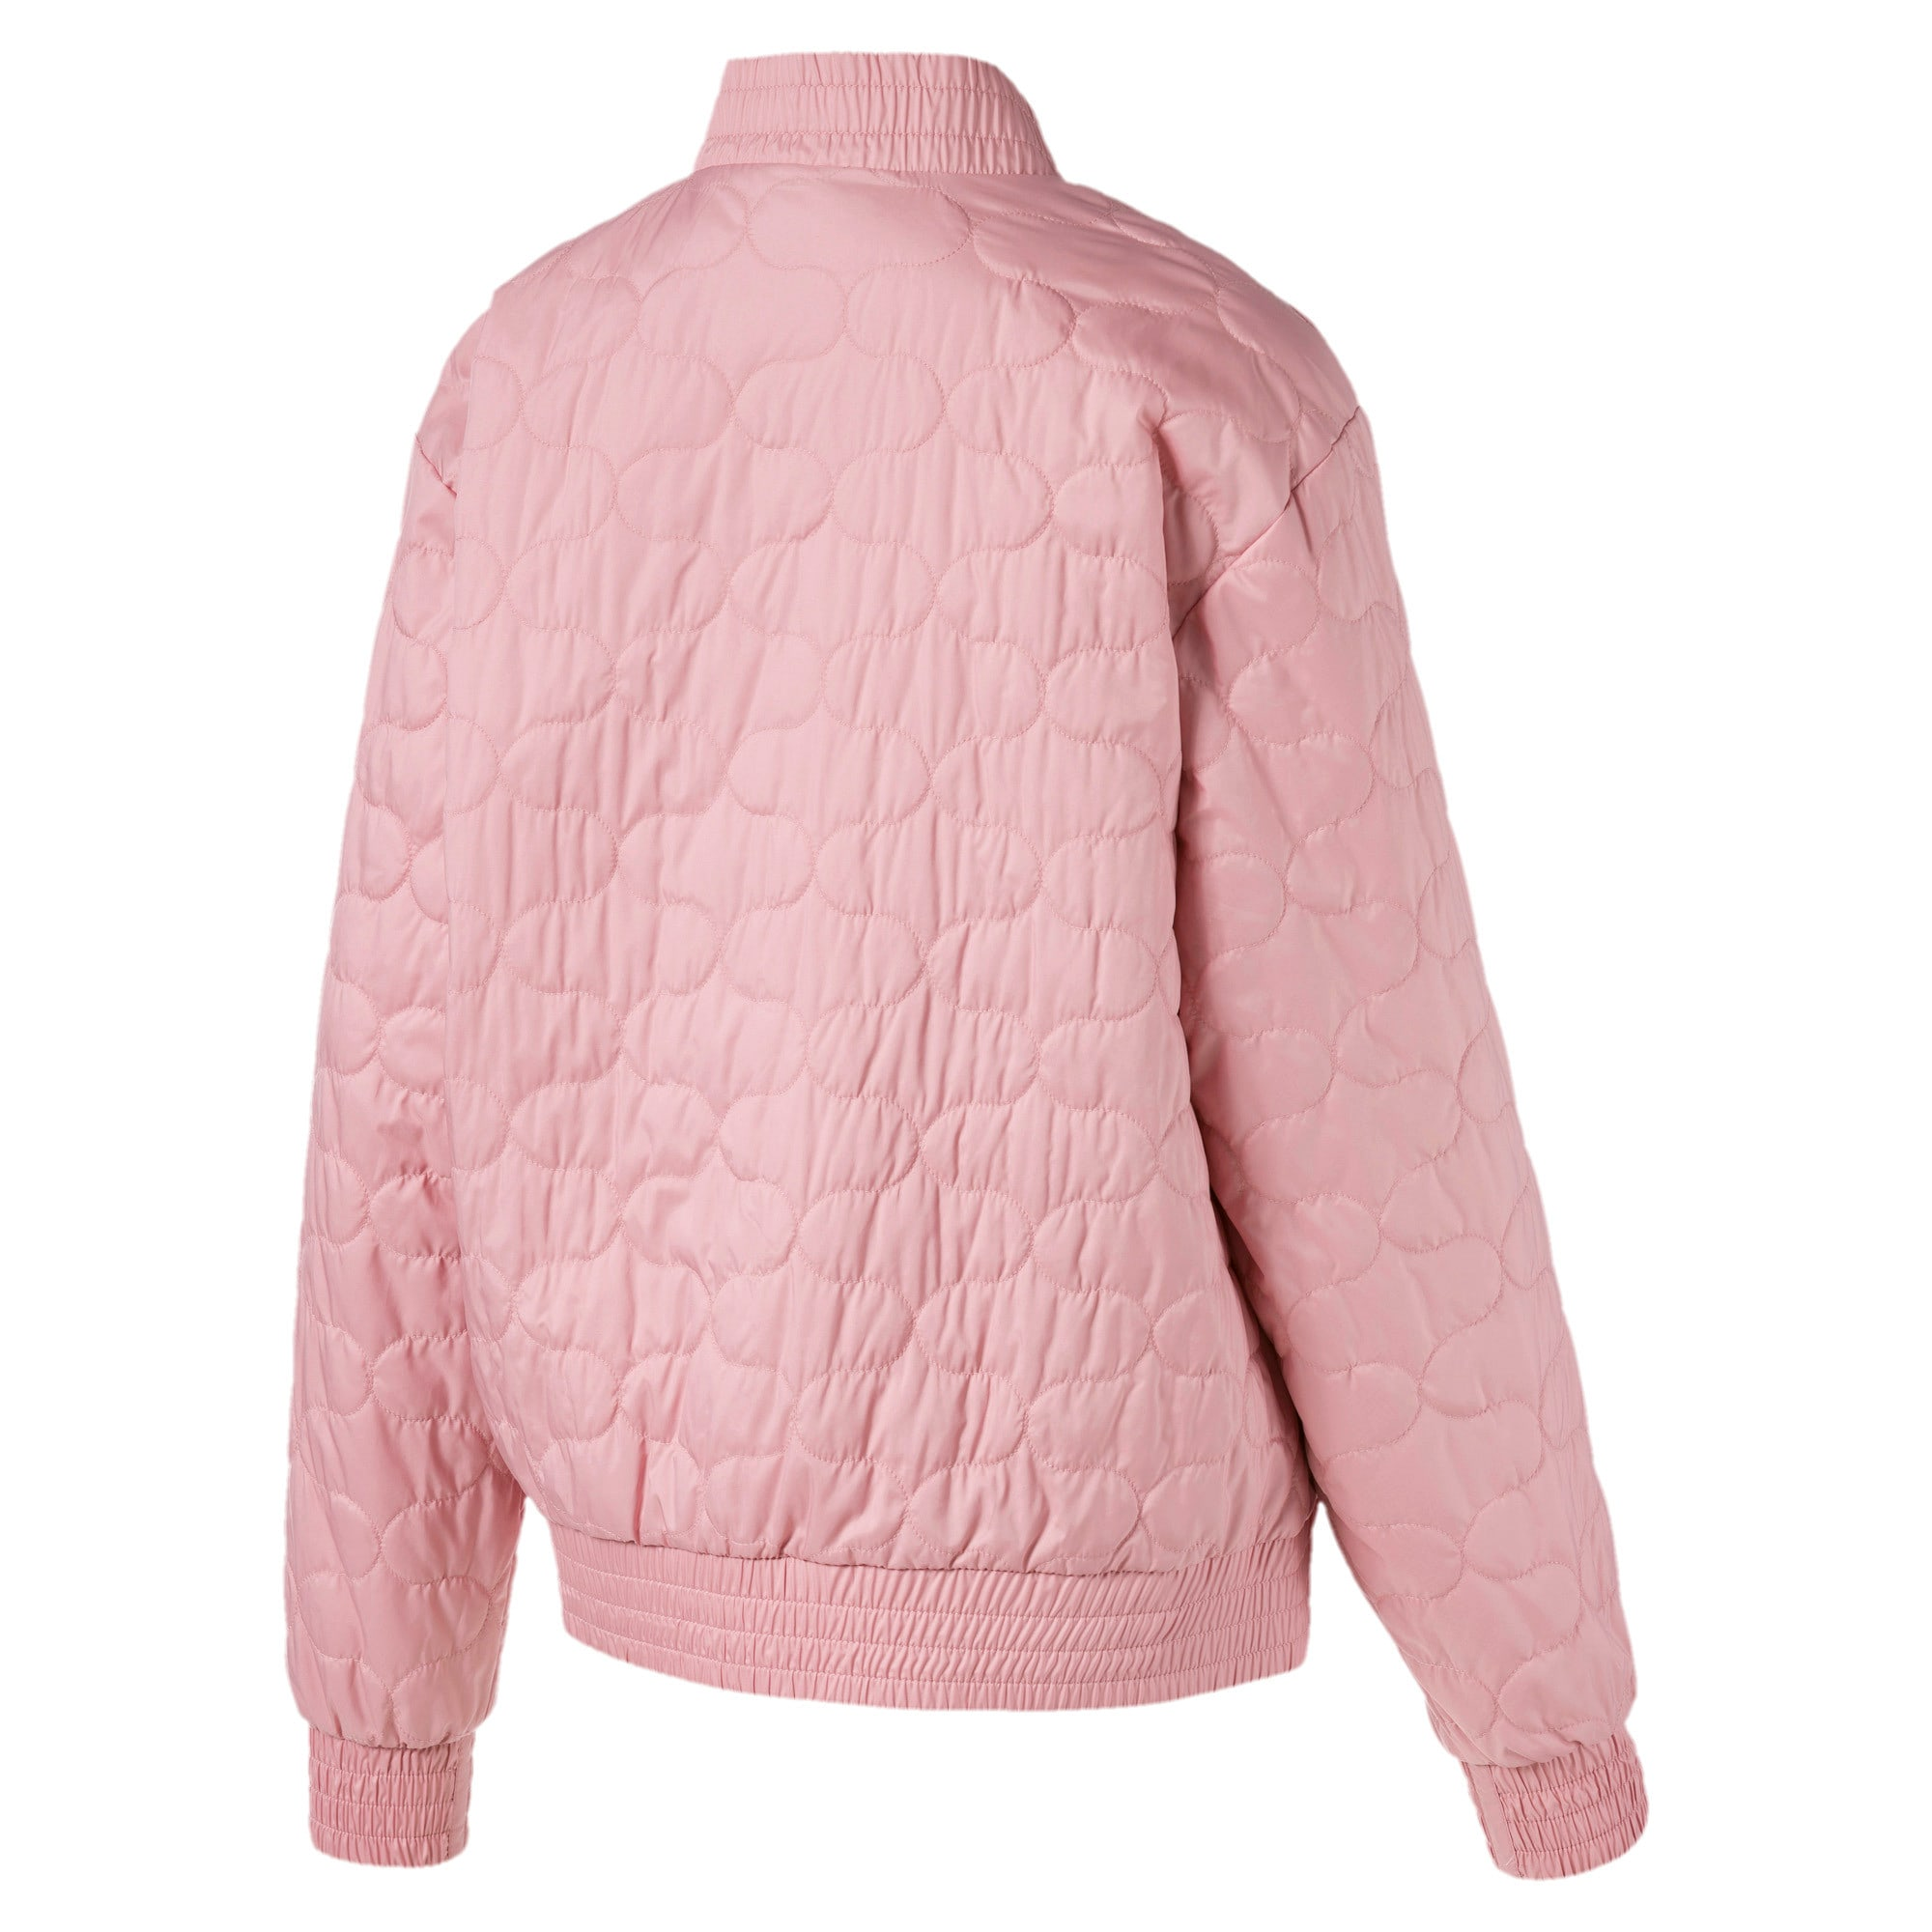 Thumbnail 5 of Woven Women's Bomber Jacket, Bridal Rose, medium